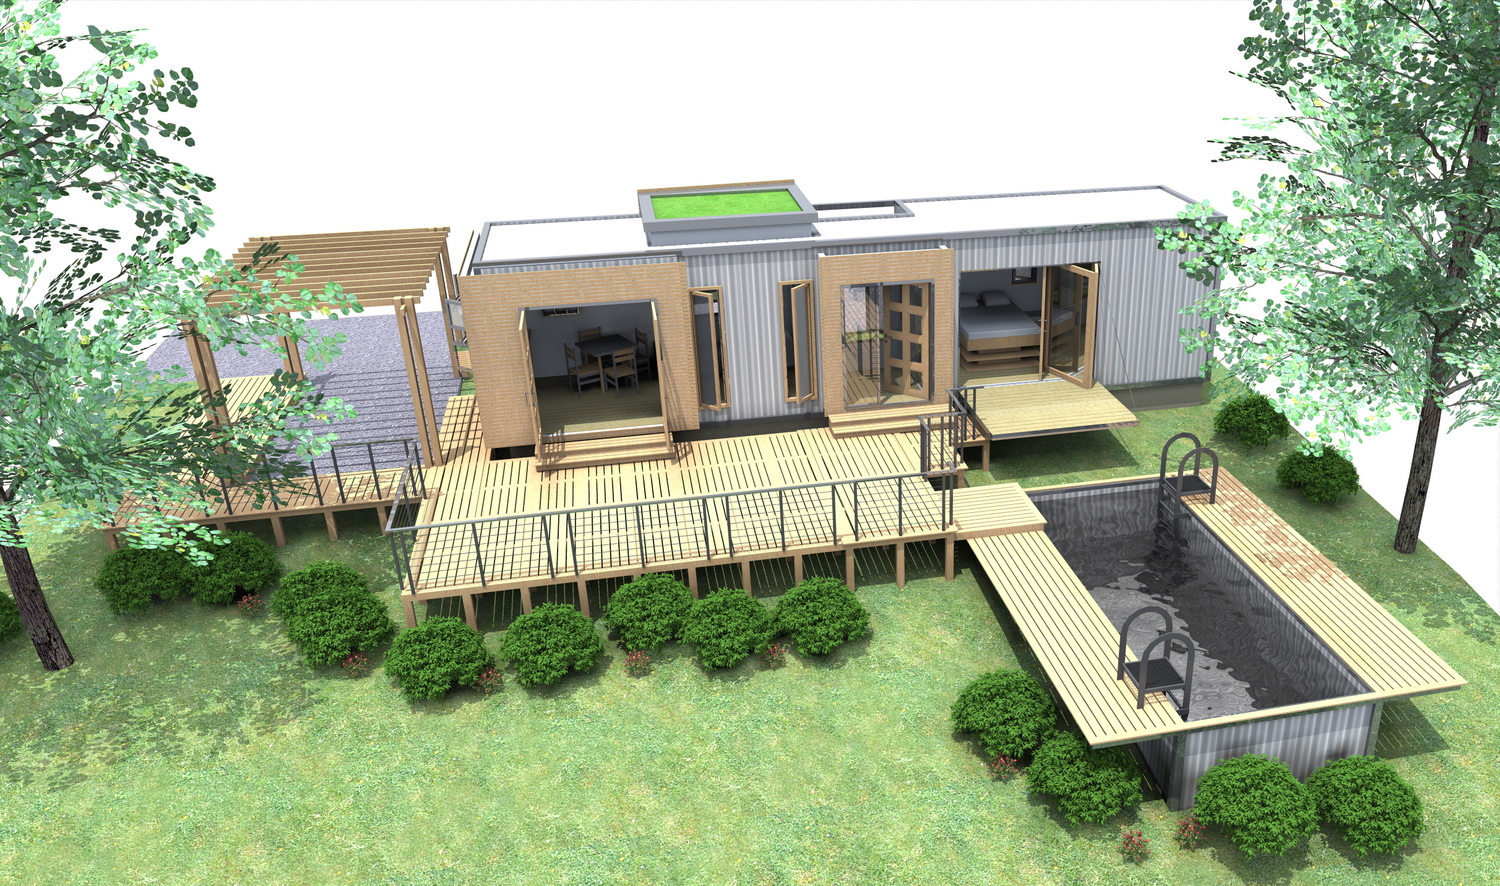 Mobiles home container homes tiny houses container houses pigs design container pools eco - Storage containers as homes ...